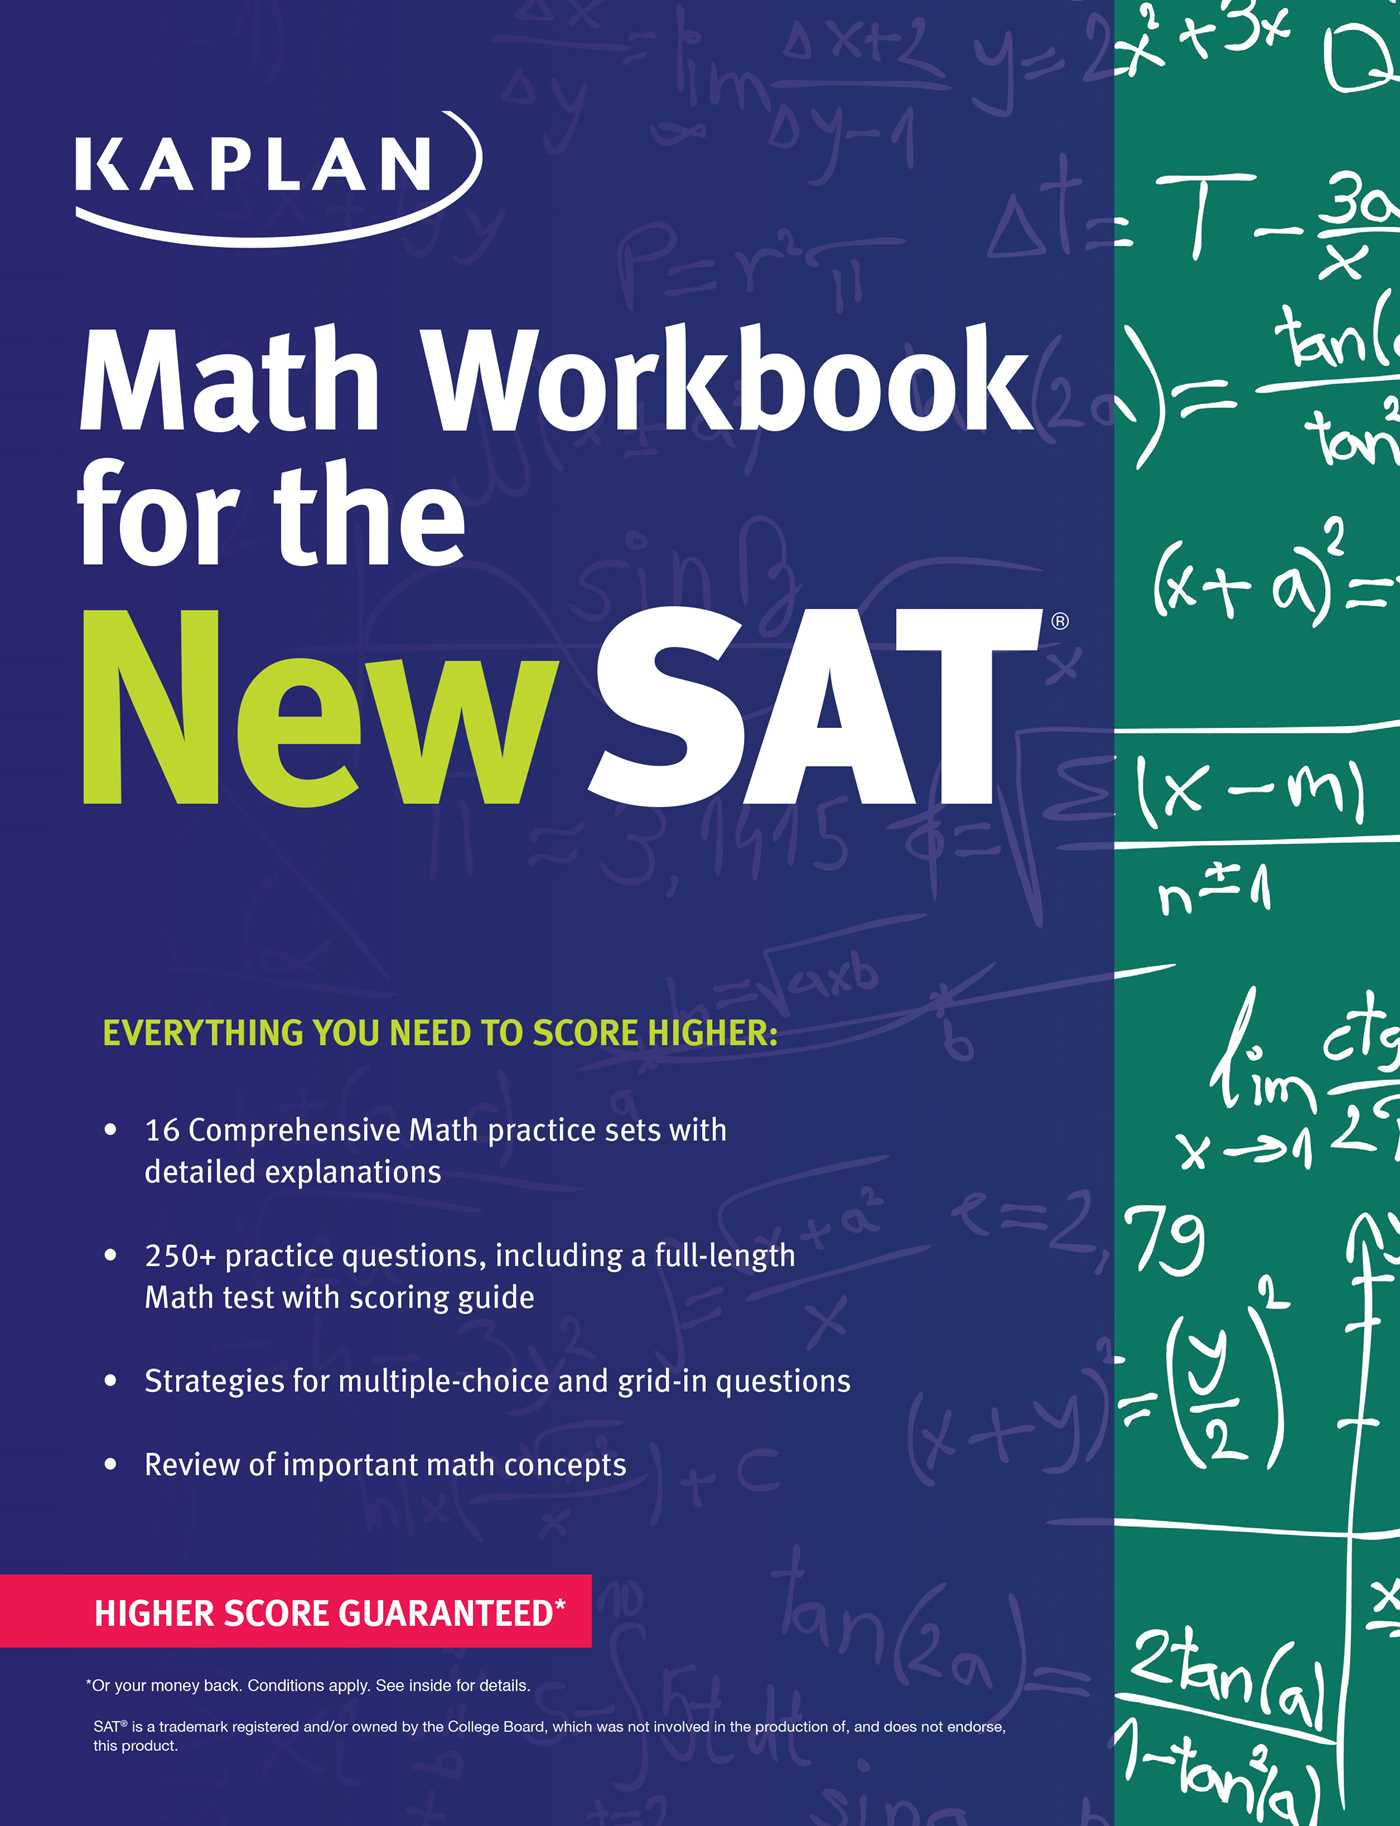 SAT Practice | SAT Suite of Assessments – The College Board